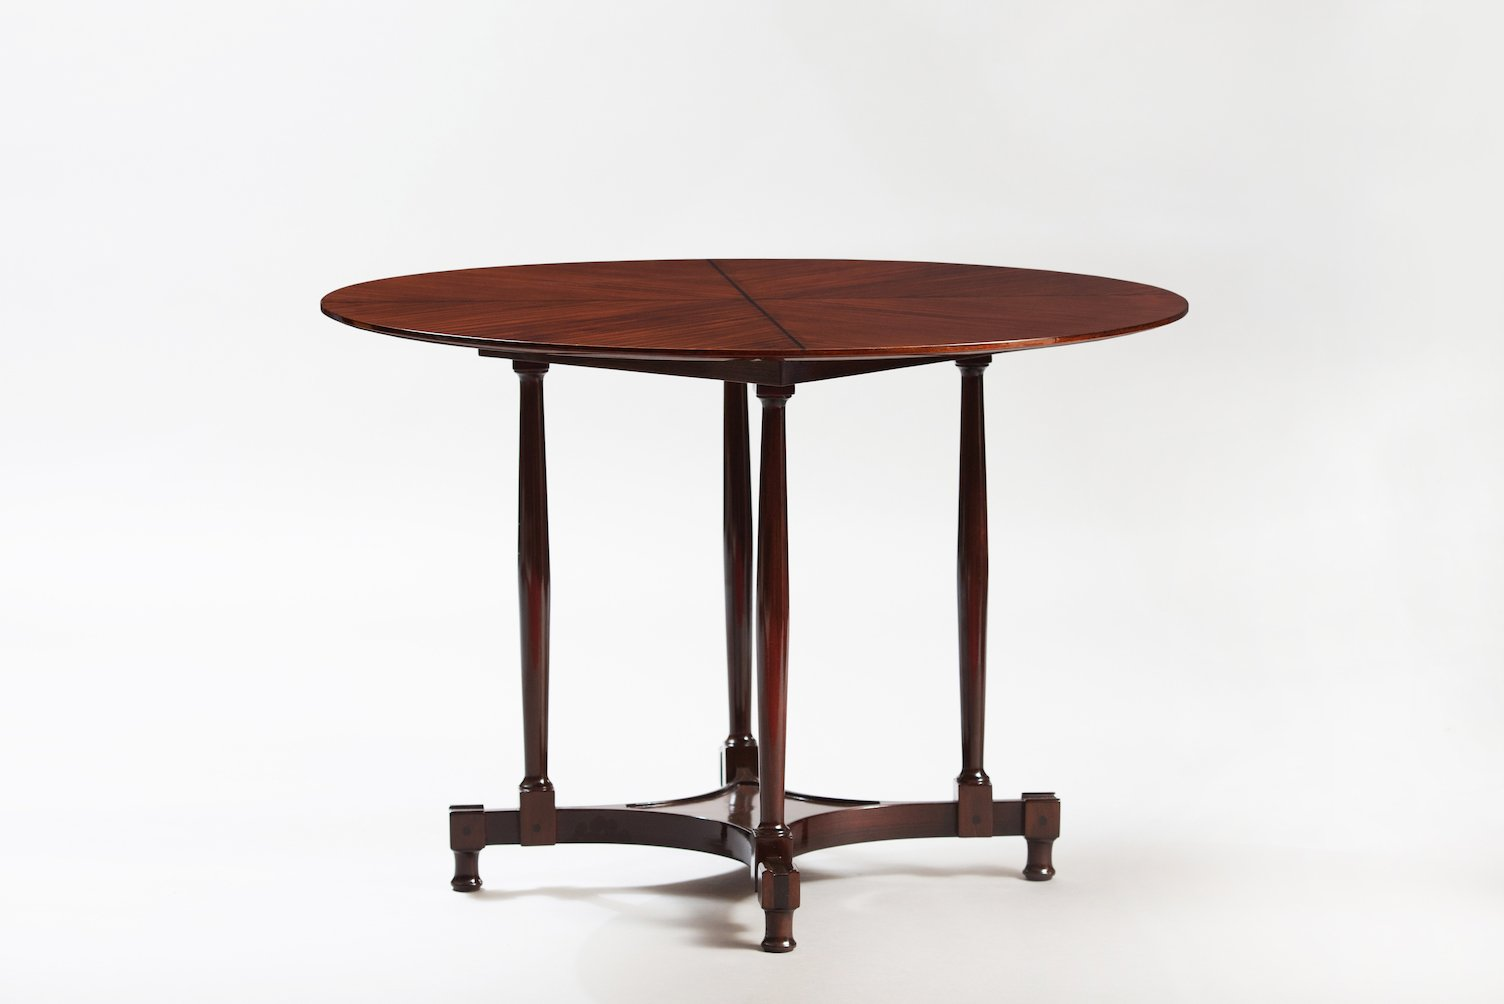 Vintage italian rosewood round dining table for sale at pamono for Italian dining table